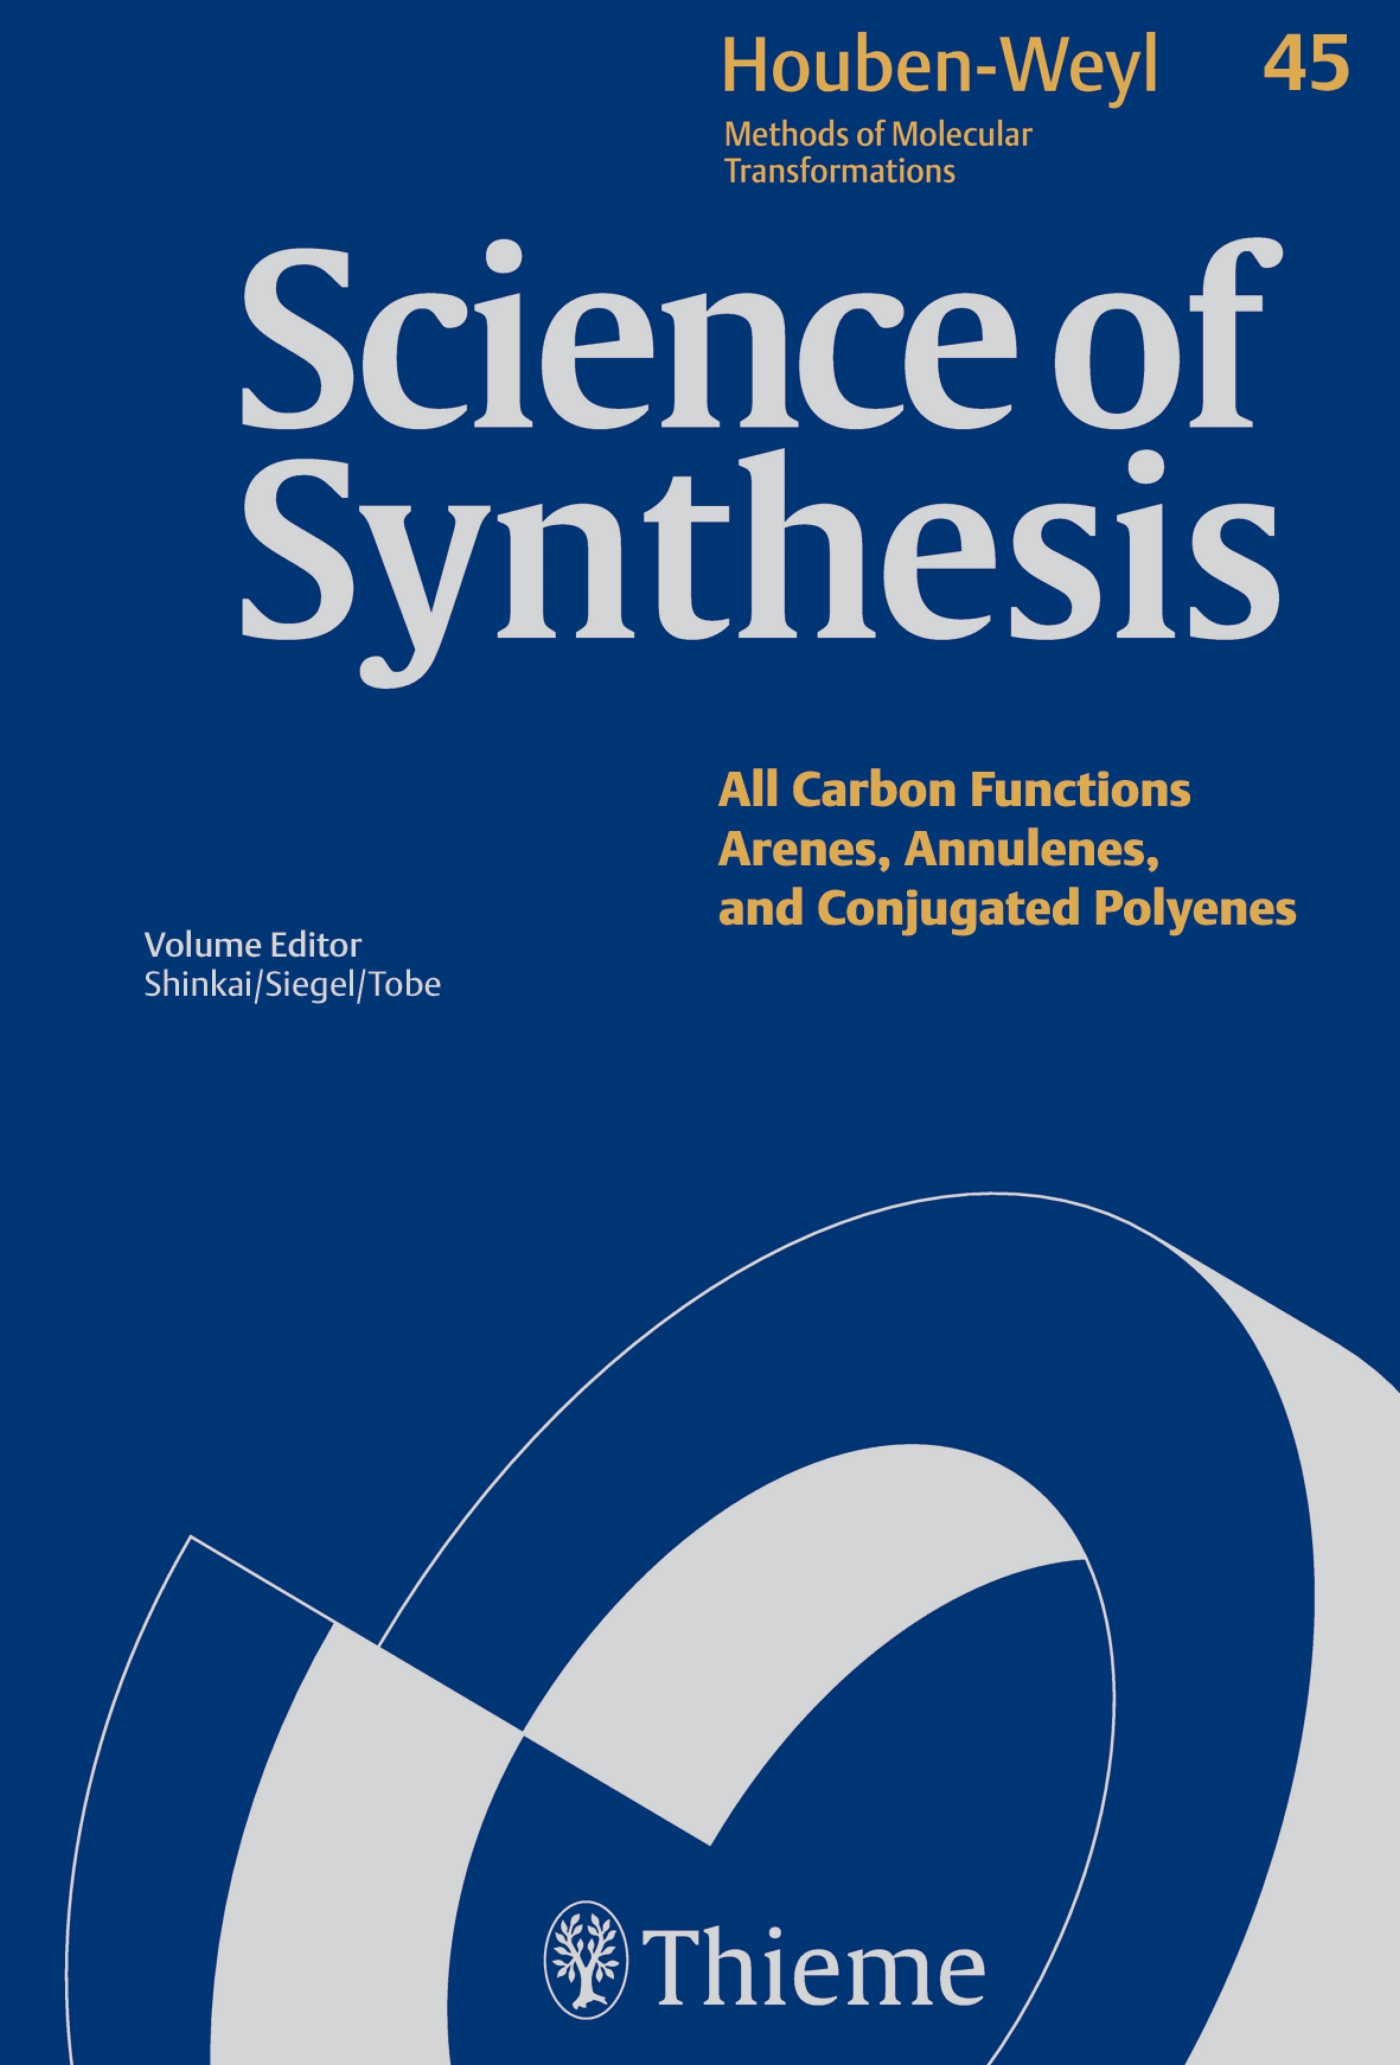 Science of Synthesis: Houben-Weyl Methods of Molecular Transformations  Vol. 45a